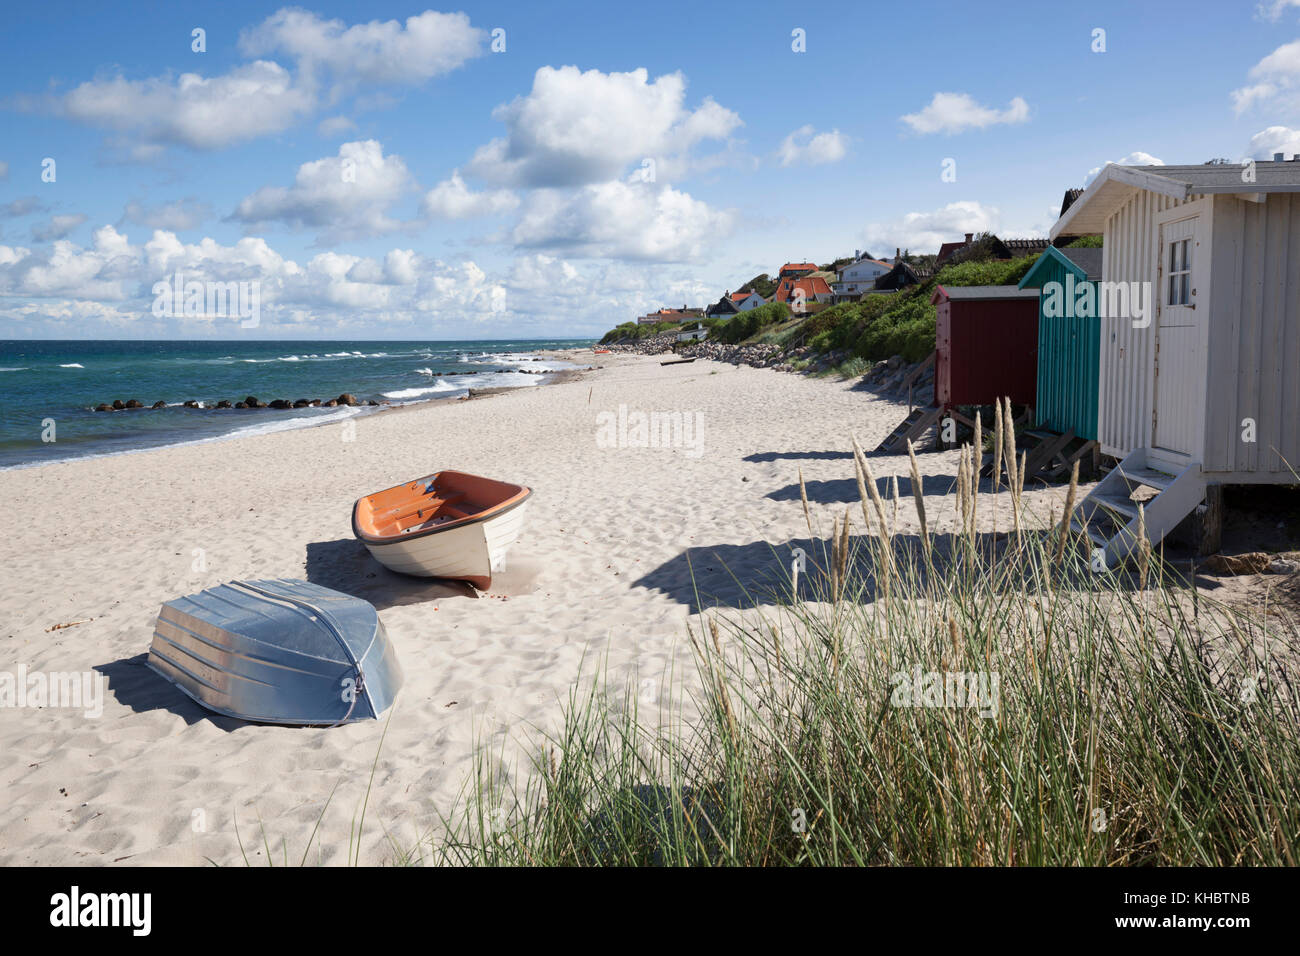 Boats and beach huts on white sand beach with town behind, Tisvilde, Kattegat Coast, Zealand, Denmark, Europe - Stock Image